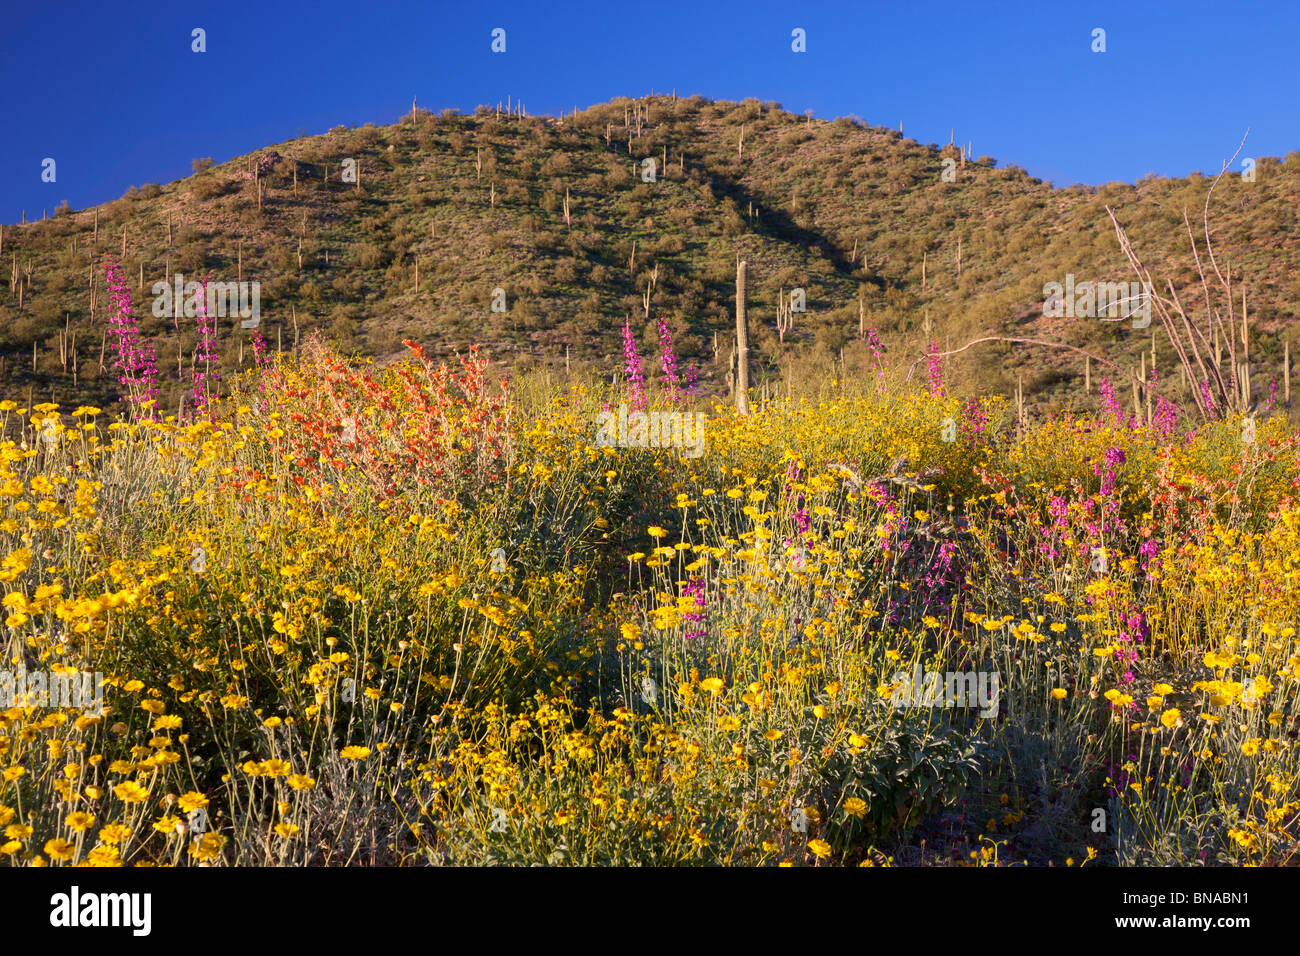 Spring wildflowers, Tonto National Forest, East of Phoenix, Arizona. - Stock Image